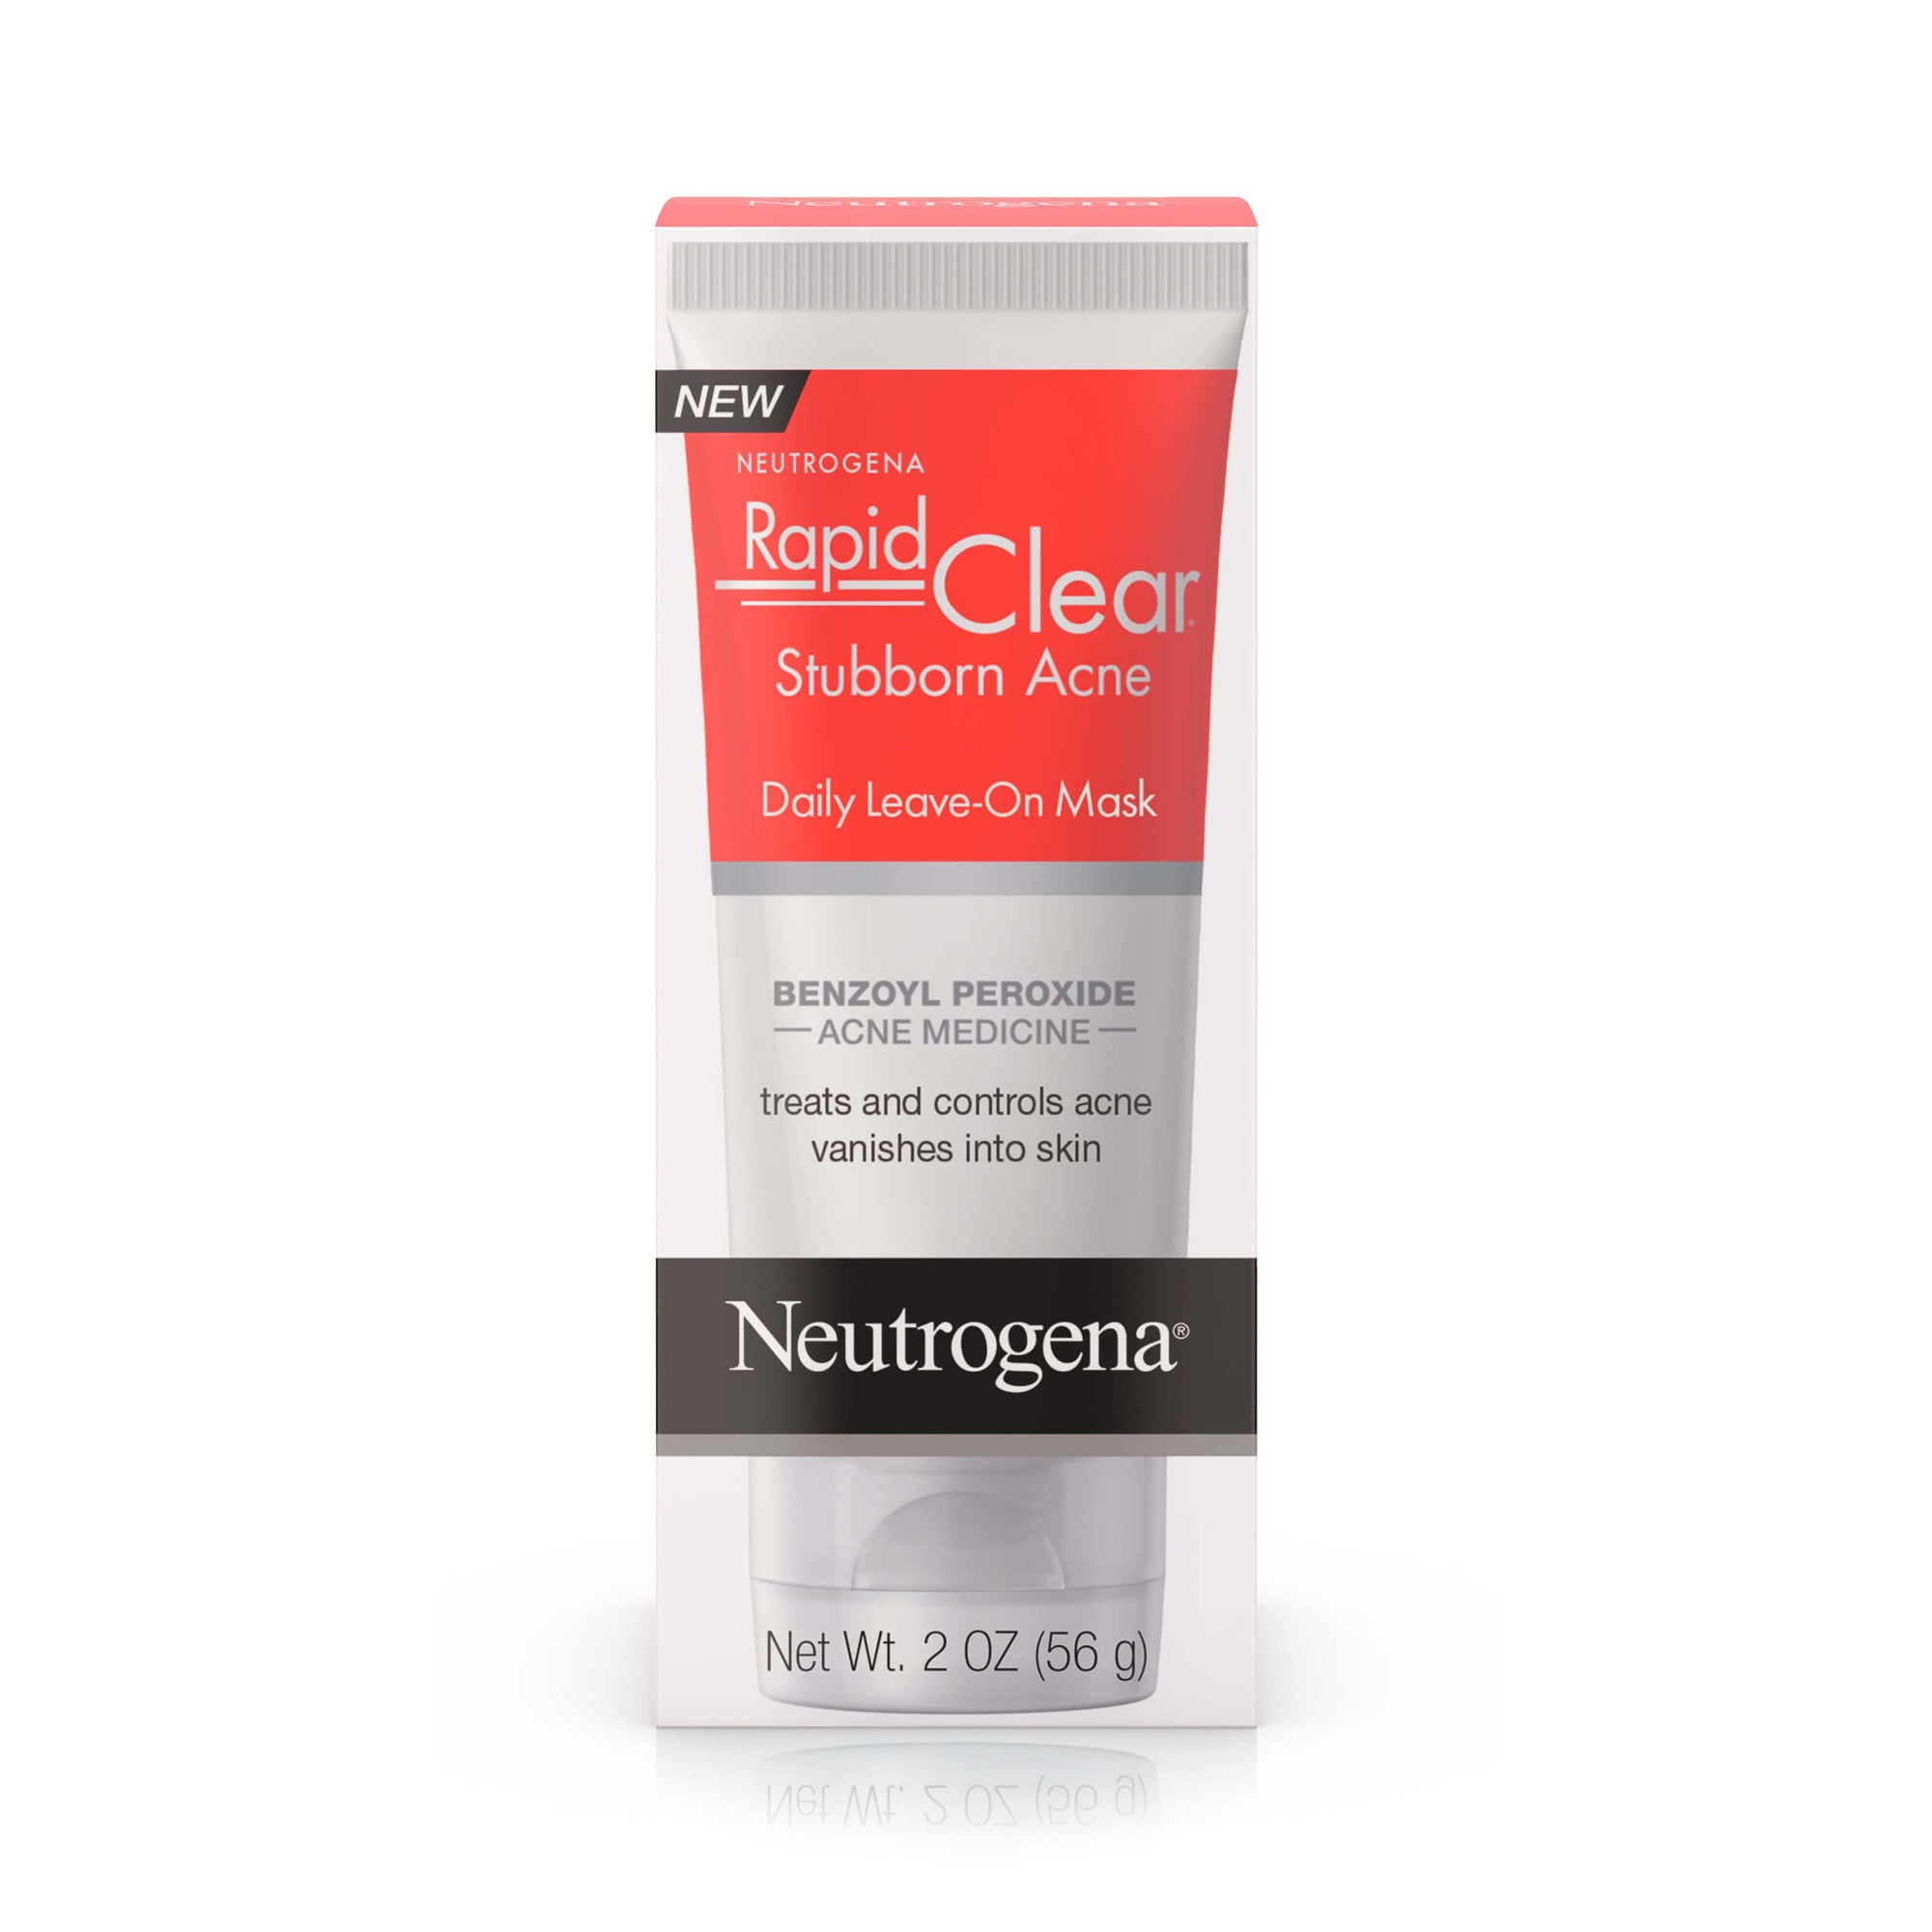 Neutrogena Rapid Clear Stubborn Acne Daily Leave-On Mask